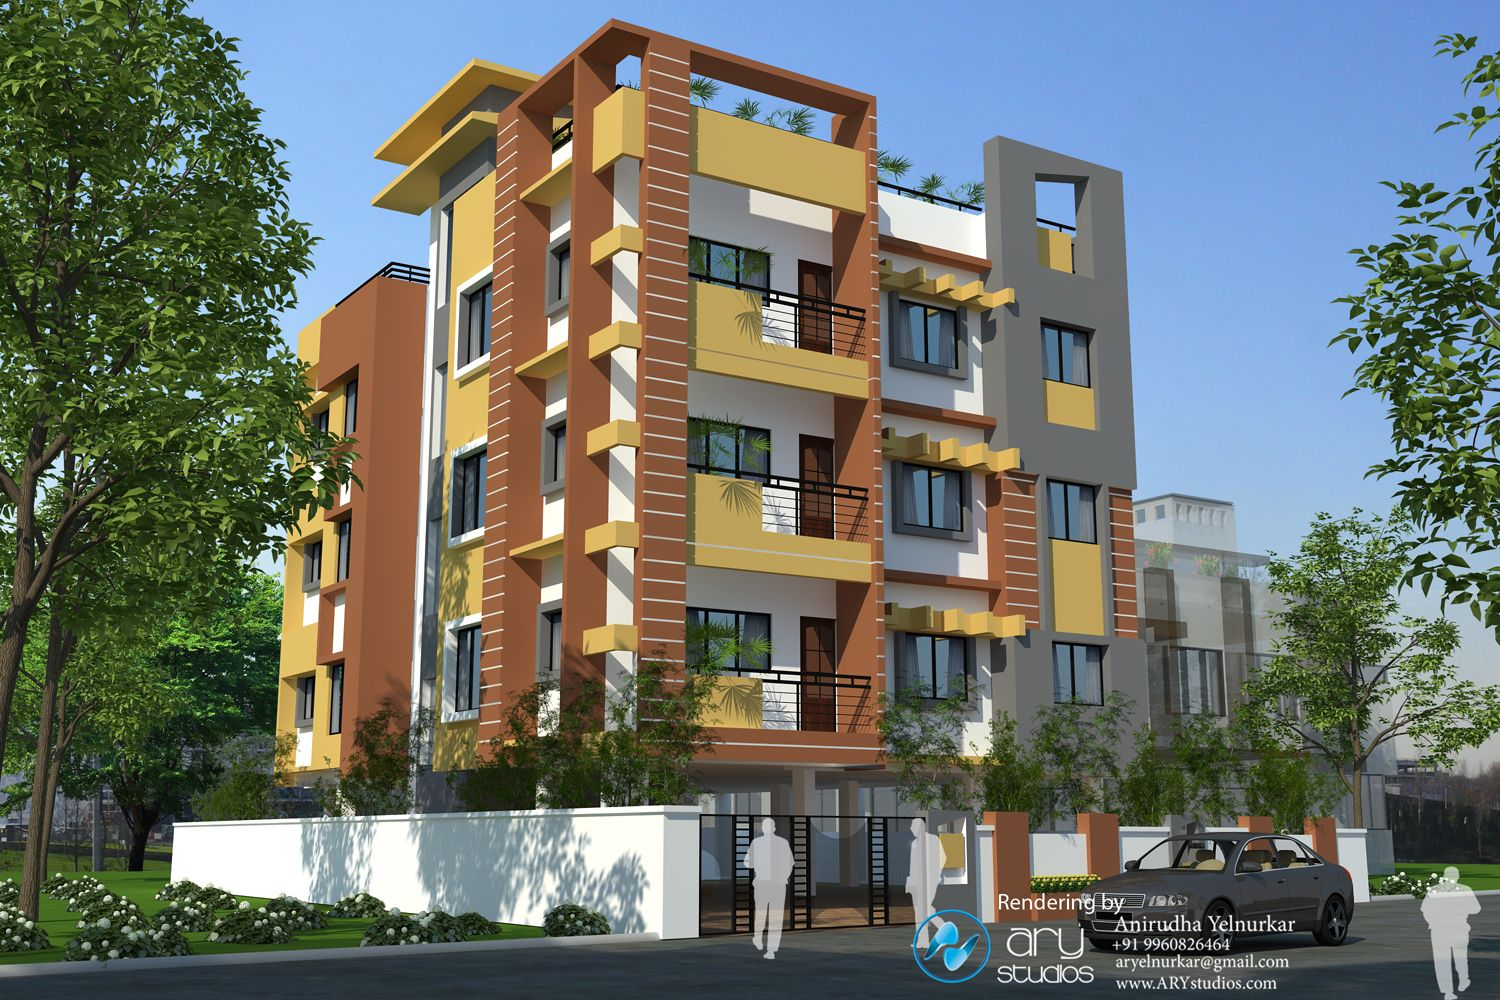 Indian residential building designs post navigation for House structure design ideas